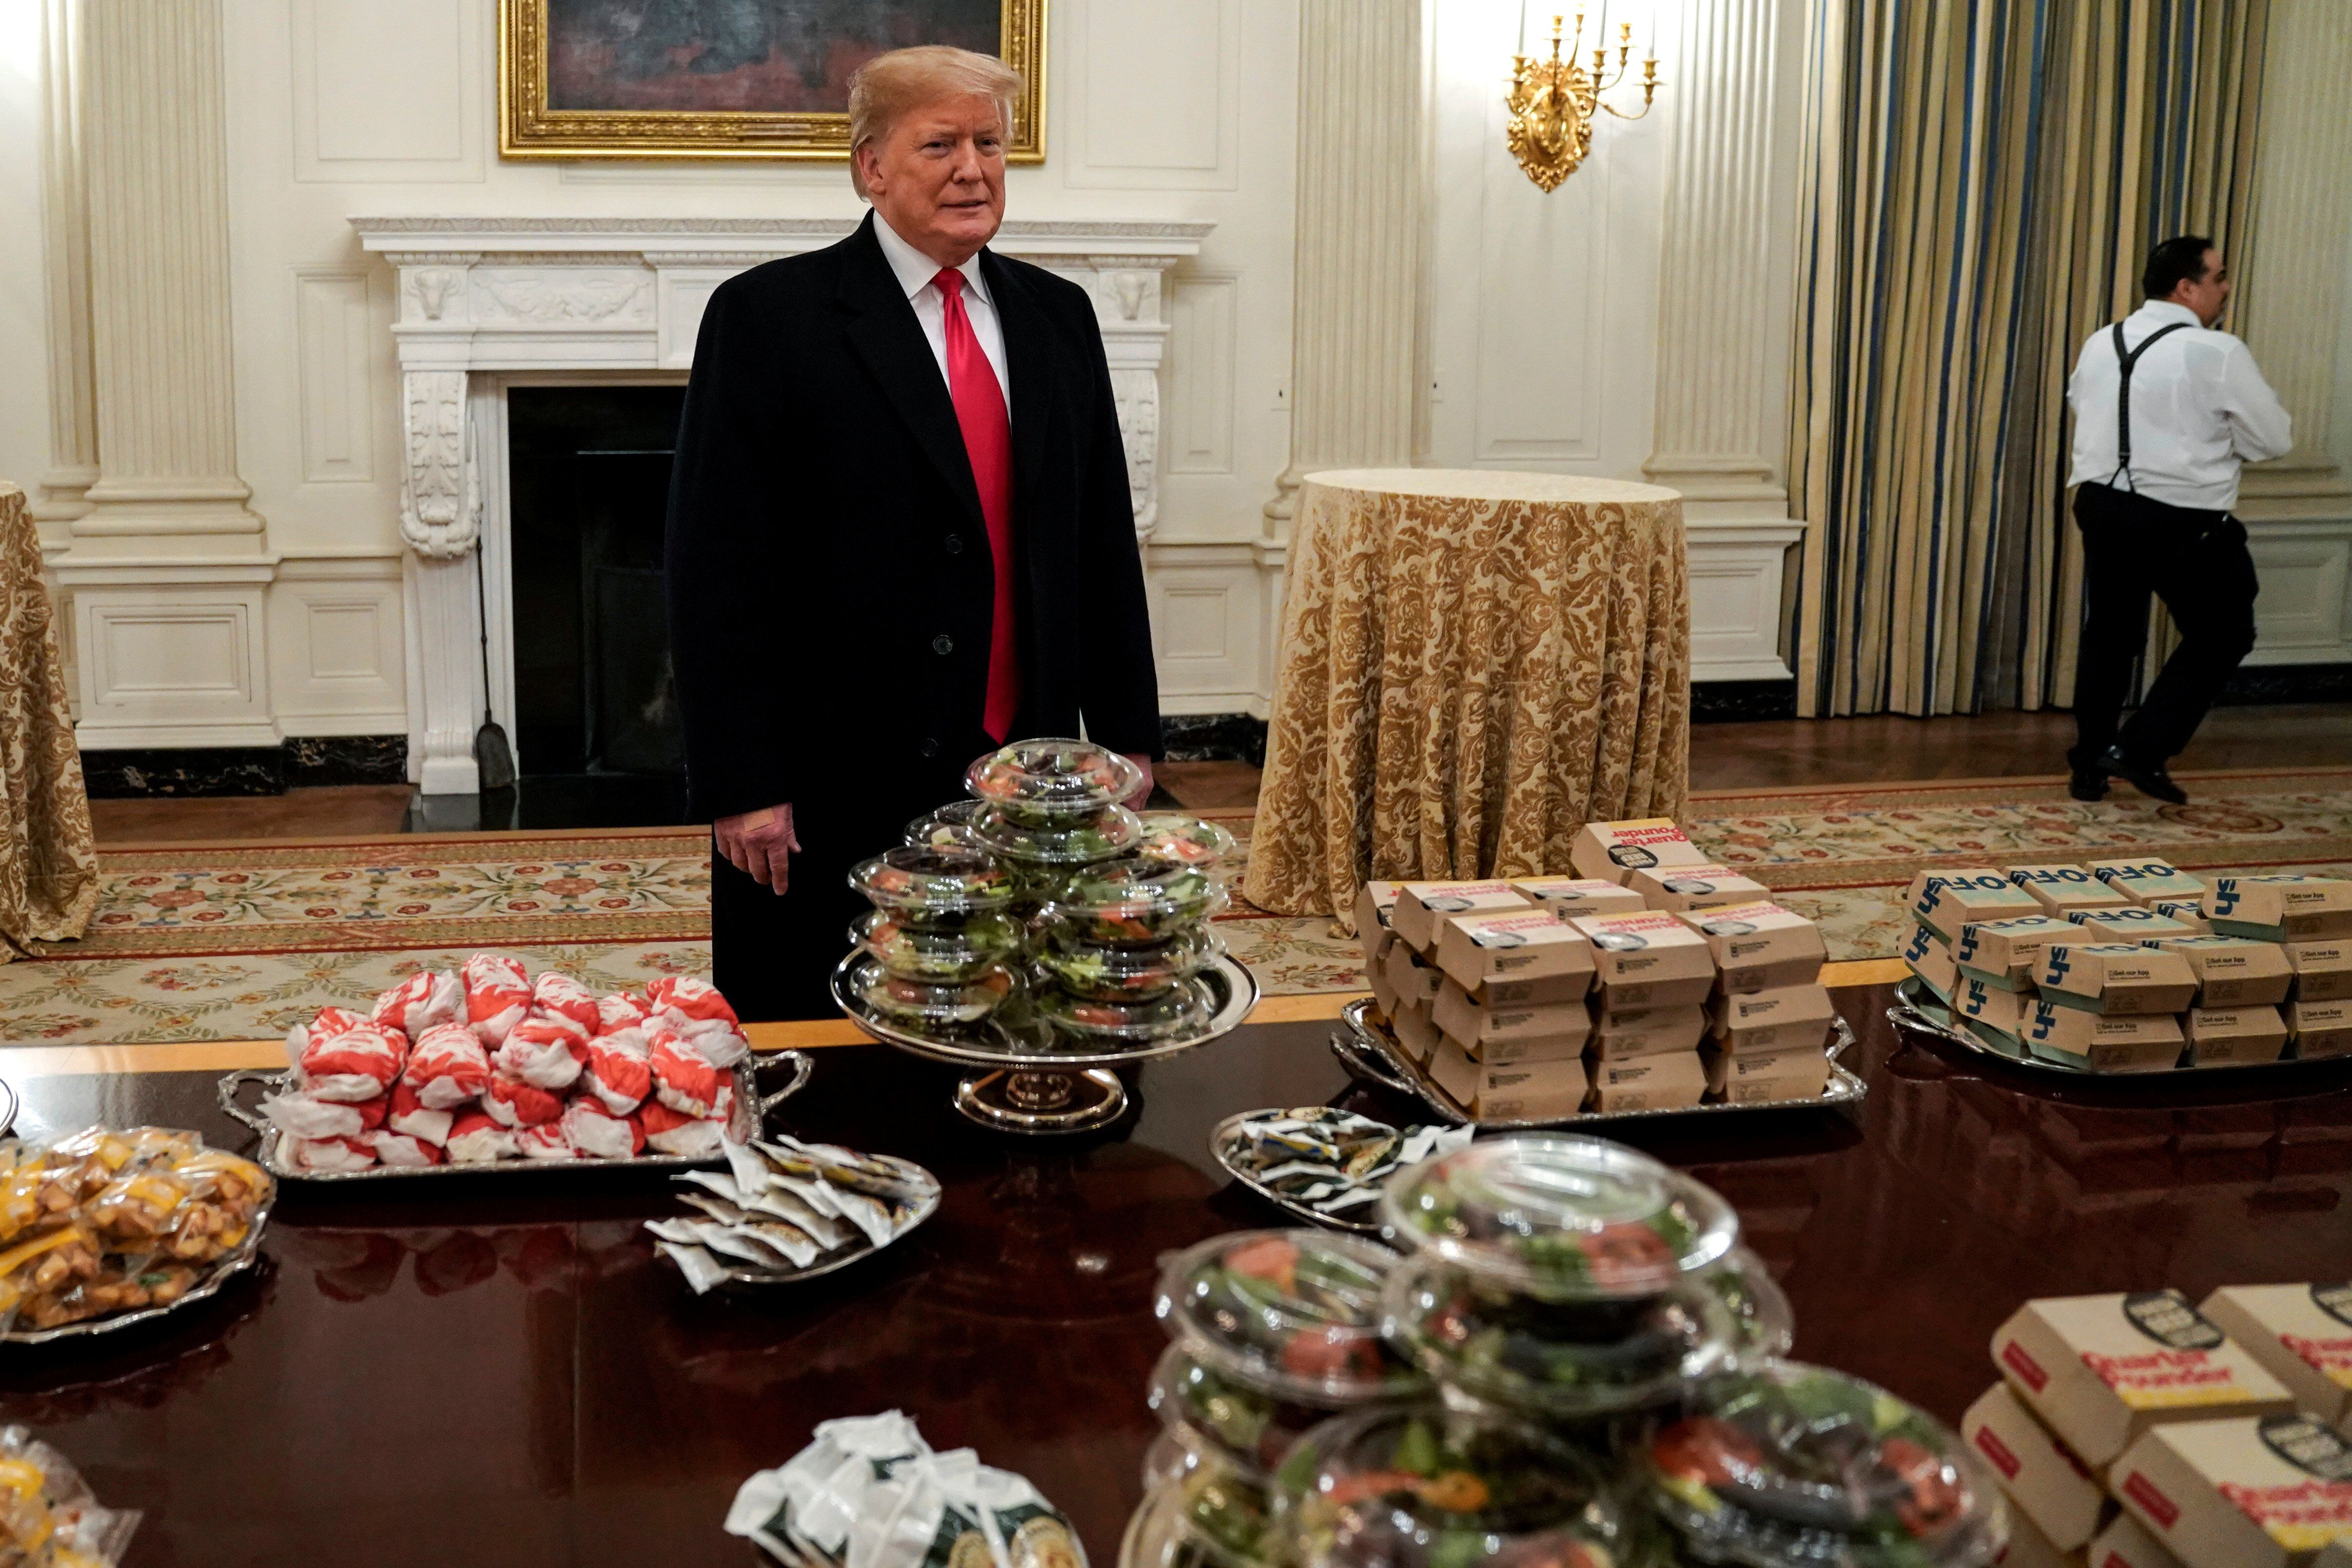 Trump Orders In Hundreds Of Fast Food Burgers For